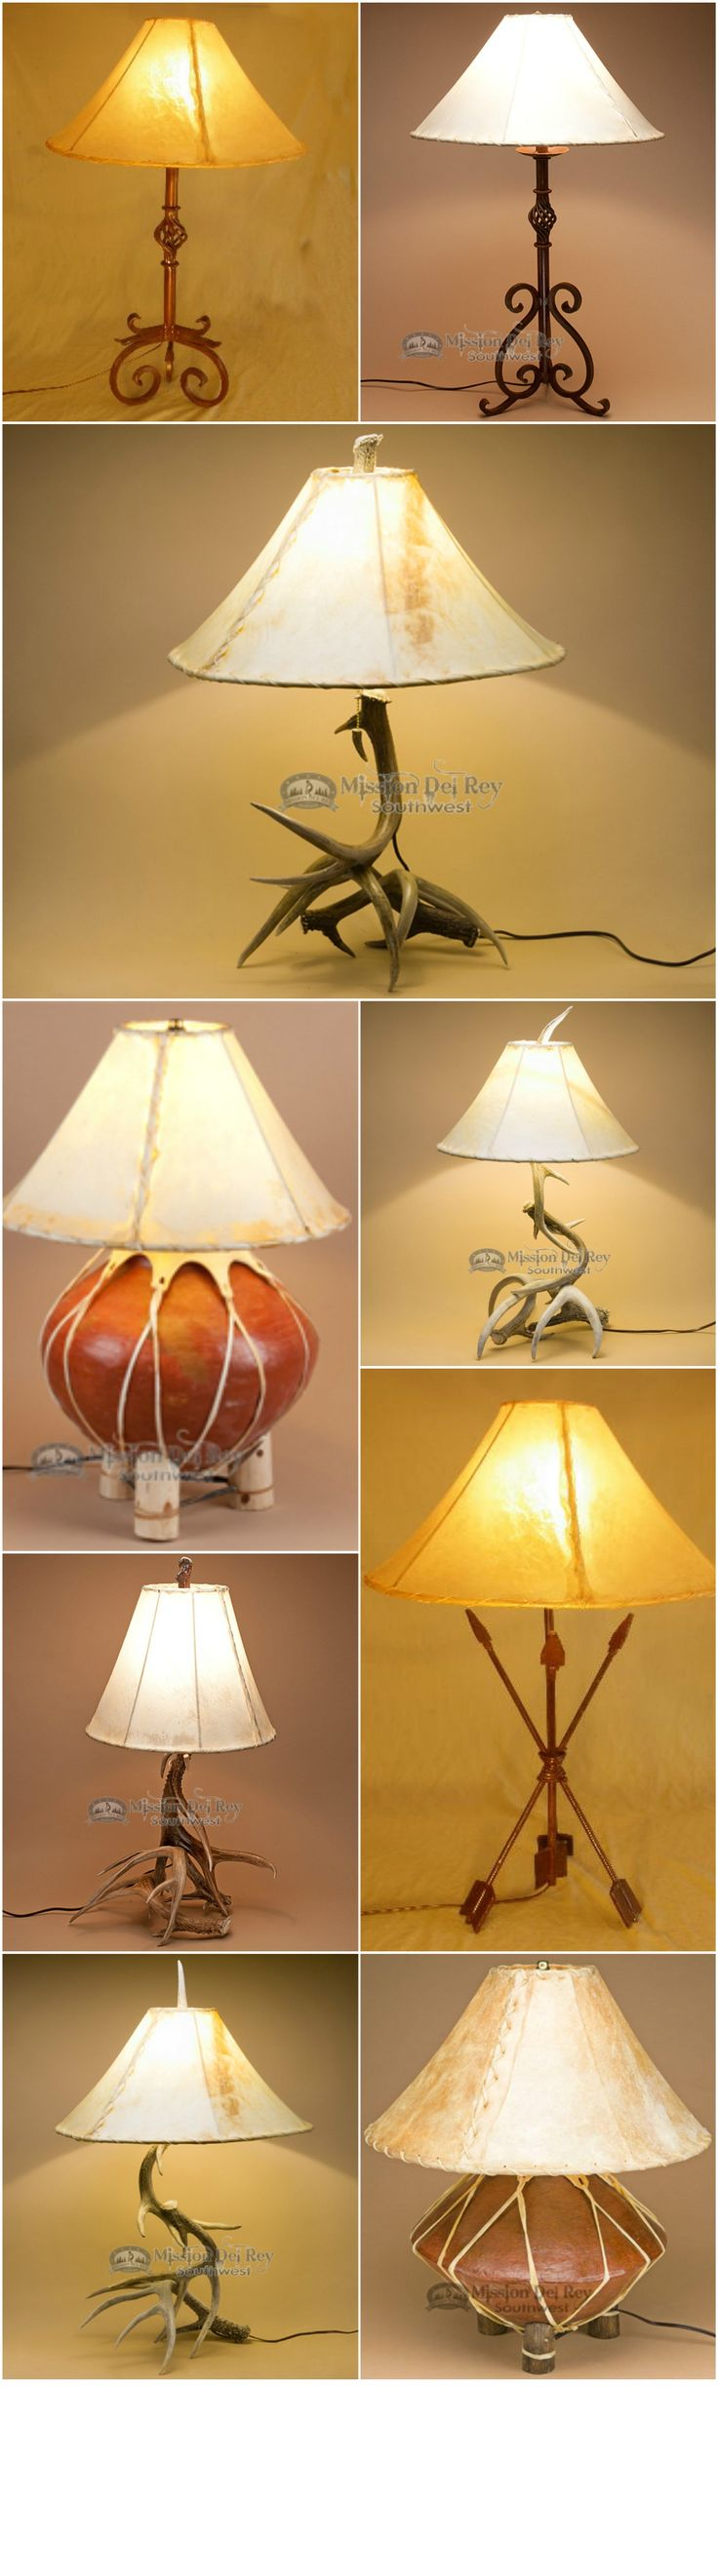 Find the perfect lamp for rustic home decor. Choose from a variety of genuine deer antler lamps, wrought iron lamps, and pottery lamps. Perfect for dressing up any space with rustic flare, our southwestern lamps allow you to keep your rustic decor theme consistent throughout the home. See all of our rustic and southwestern lamps at http://www.missiondelrey.com/southwestern-lamps/